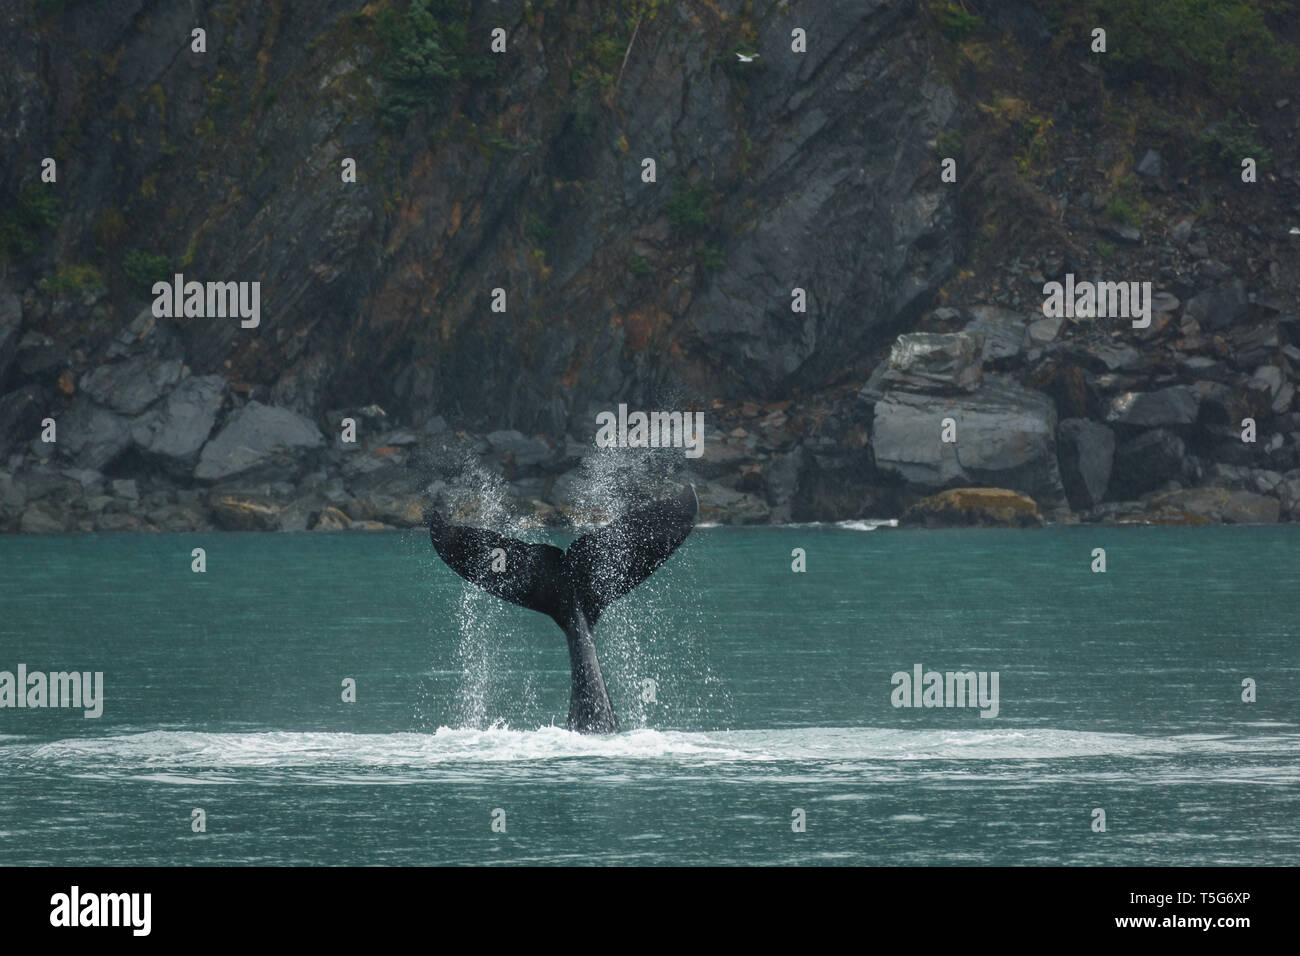 Closeup of the spray from the fluke of a whale lob-tailing in the ocean - Stock Image